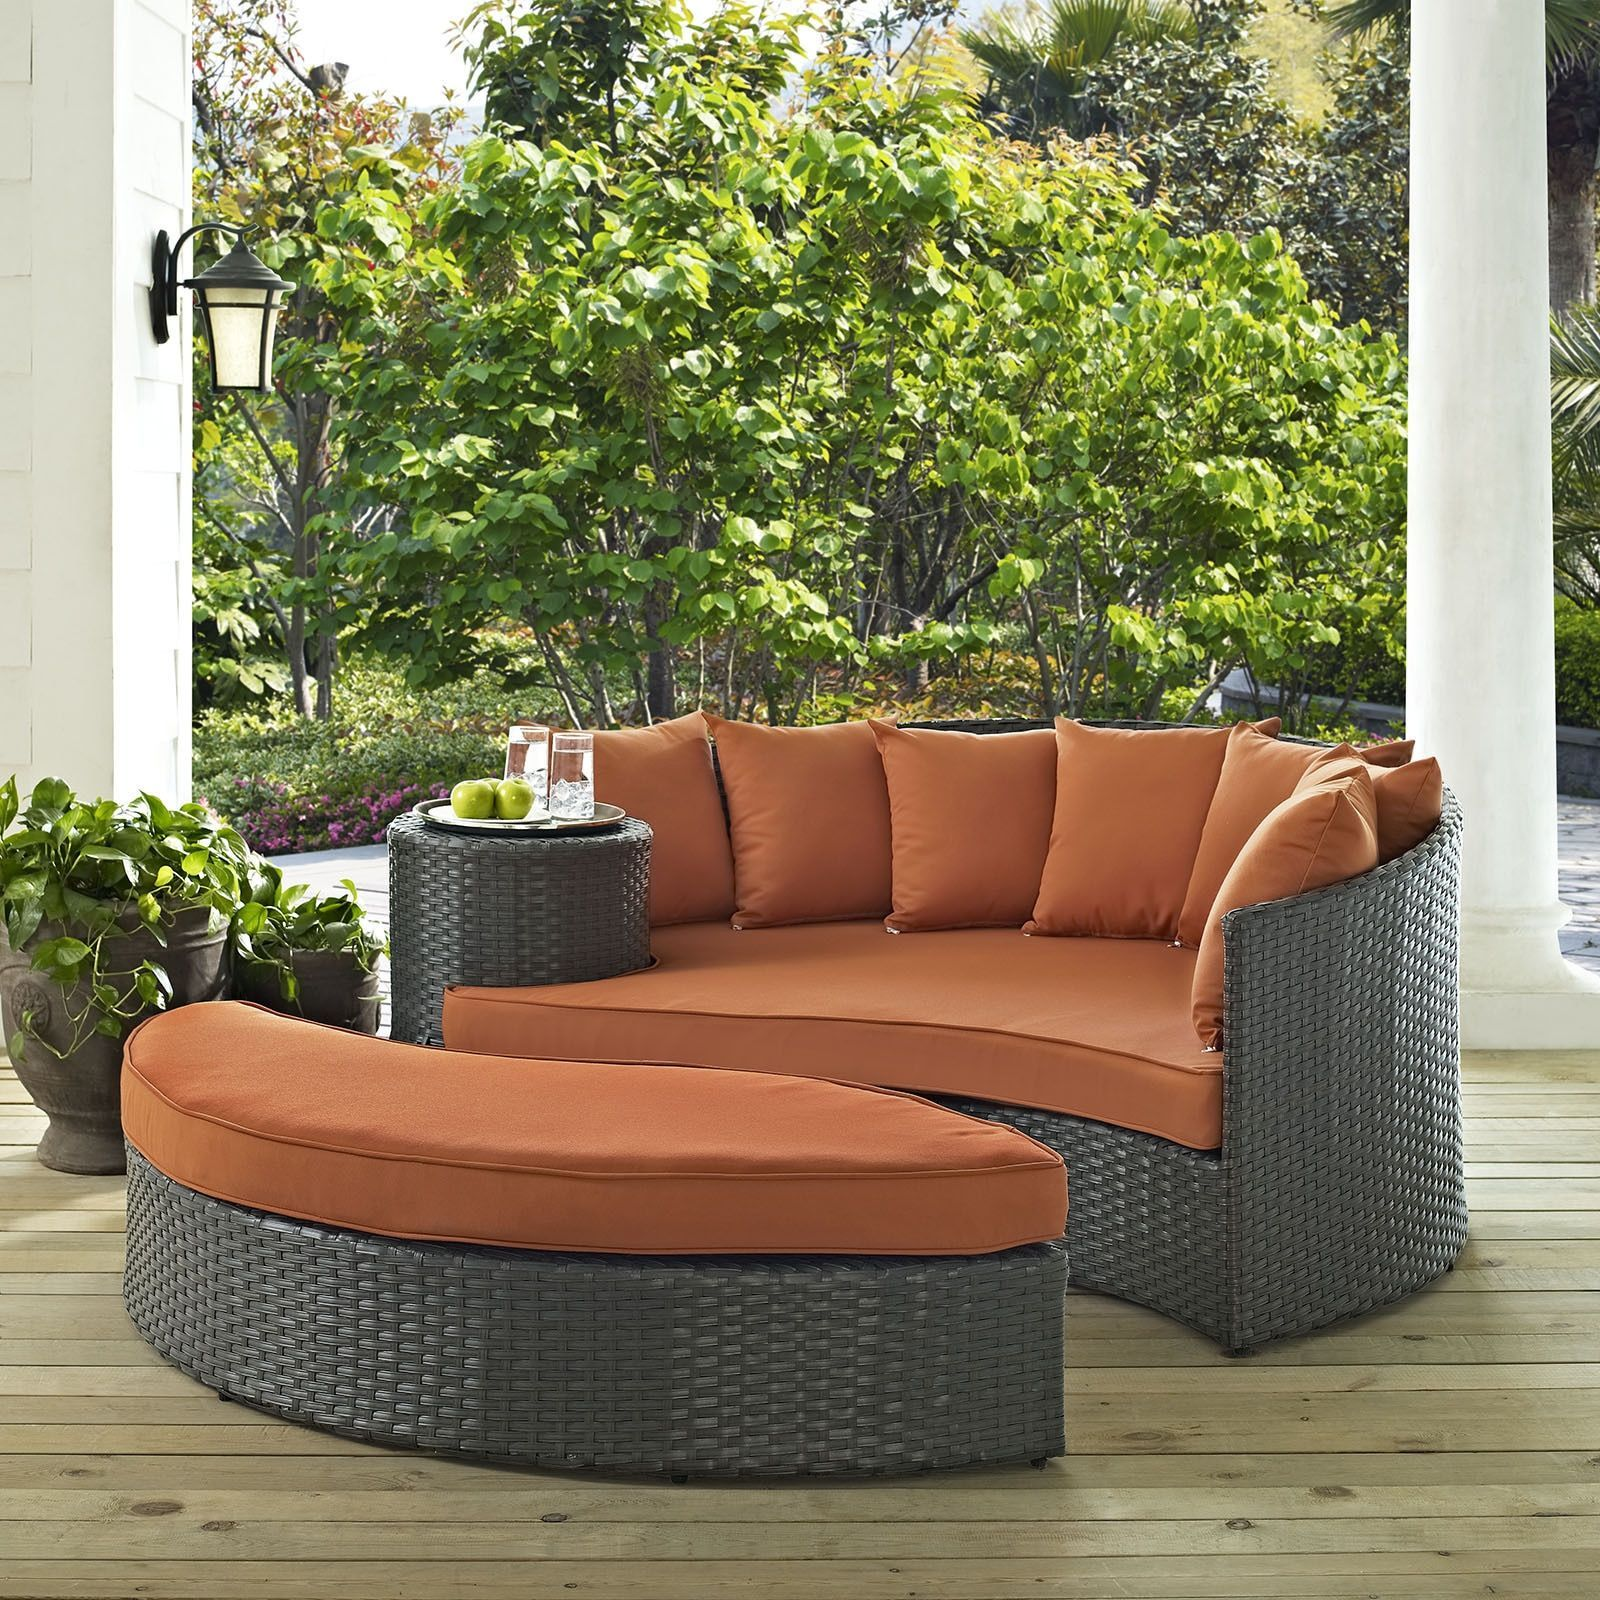 Modway Stopover Outdoor Patio Daybed Beige Size 2 Piece Sets